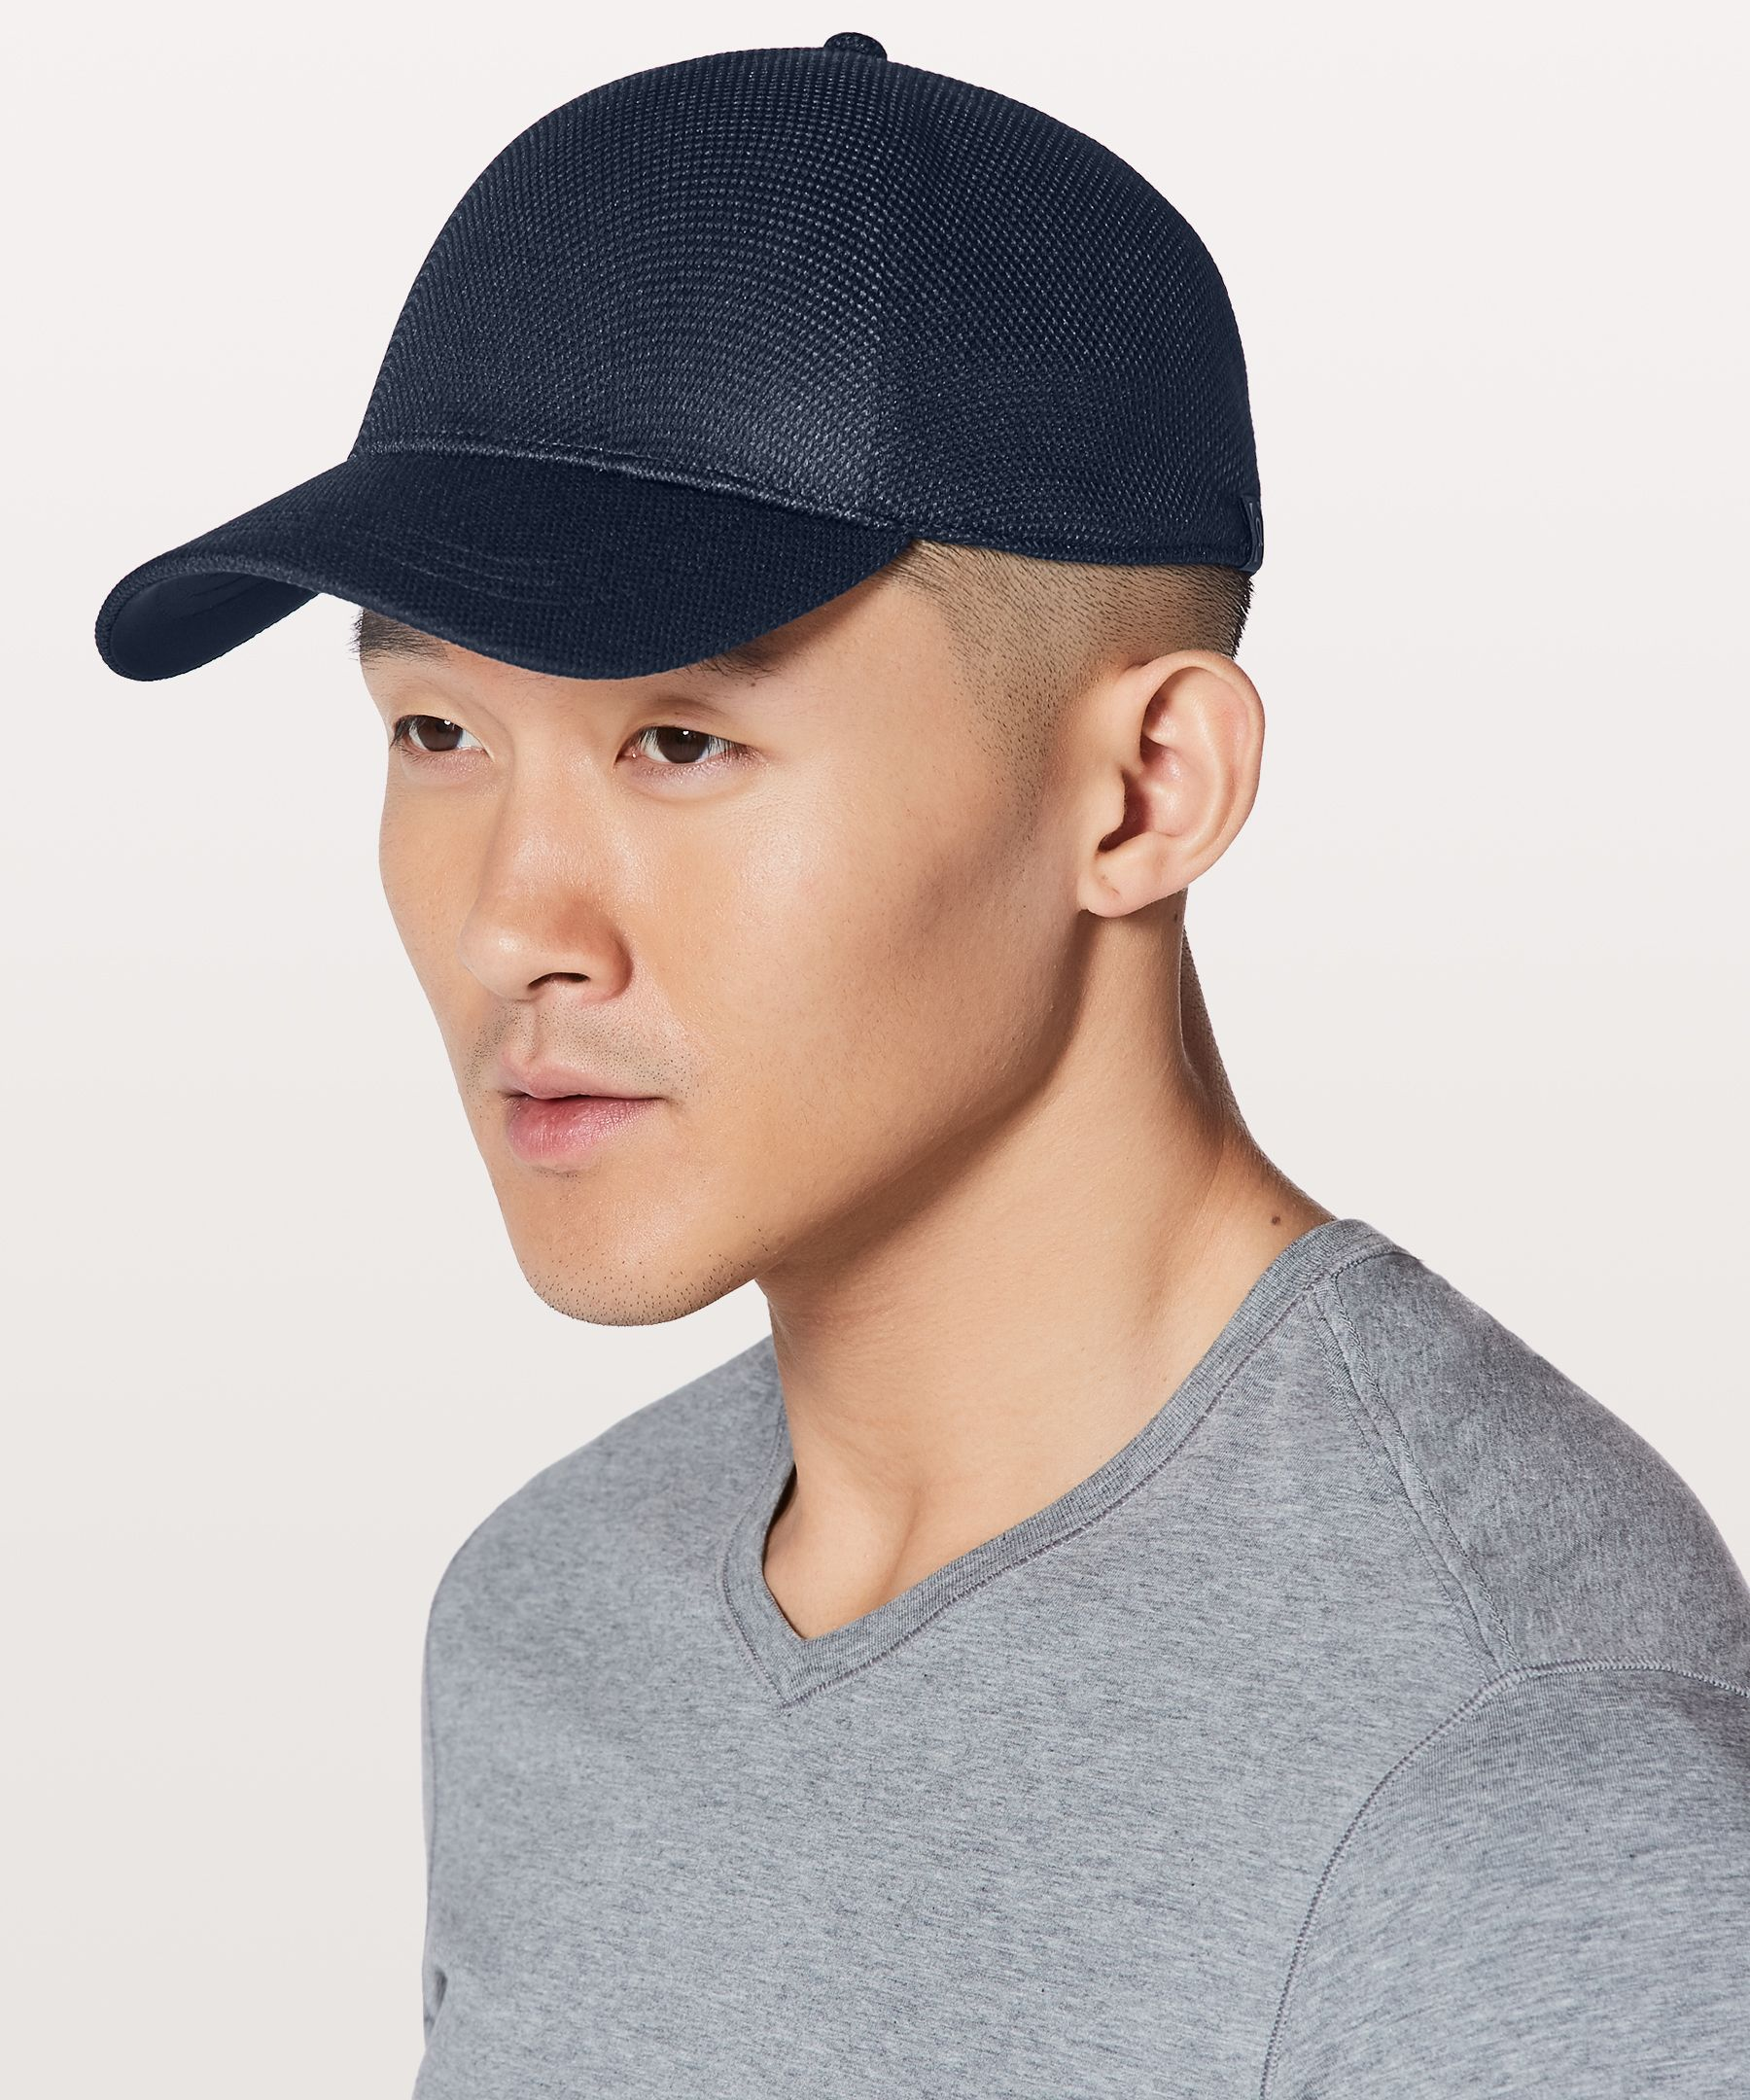 The Single Panel Hat Cool Online Only New by Lululemon